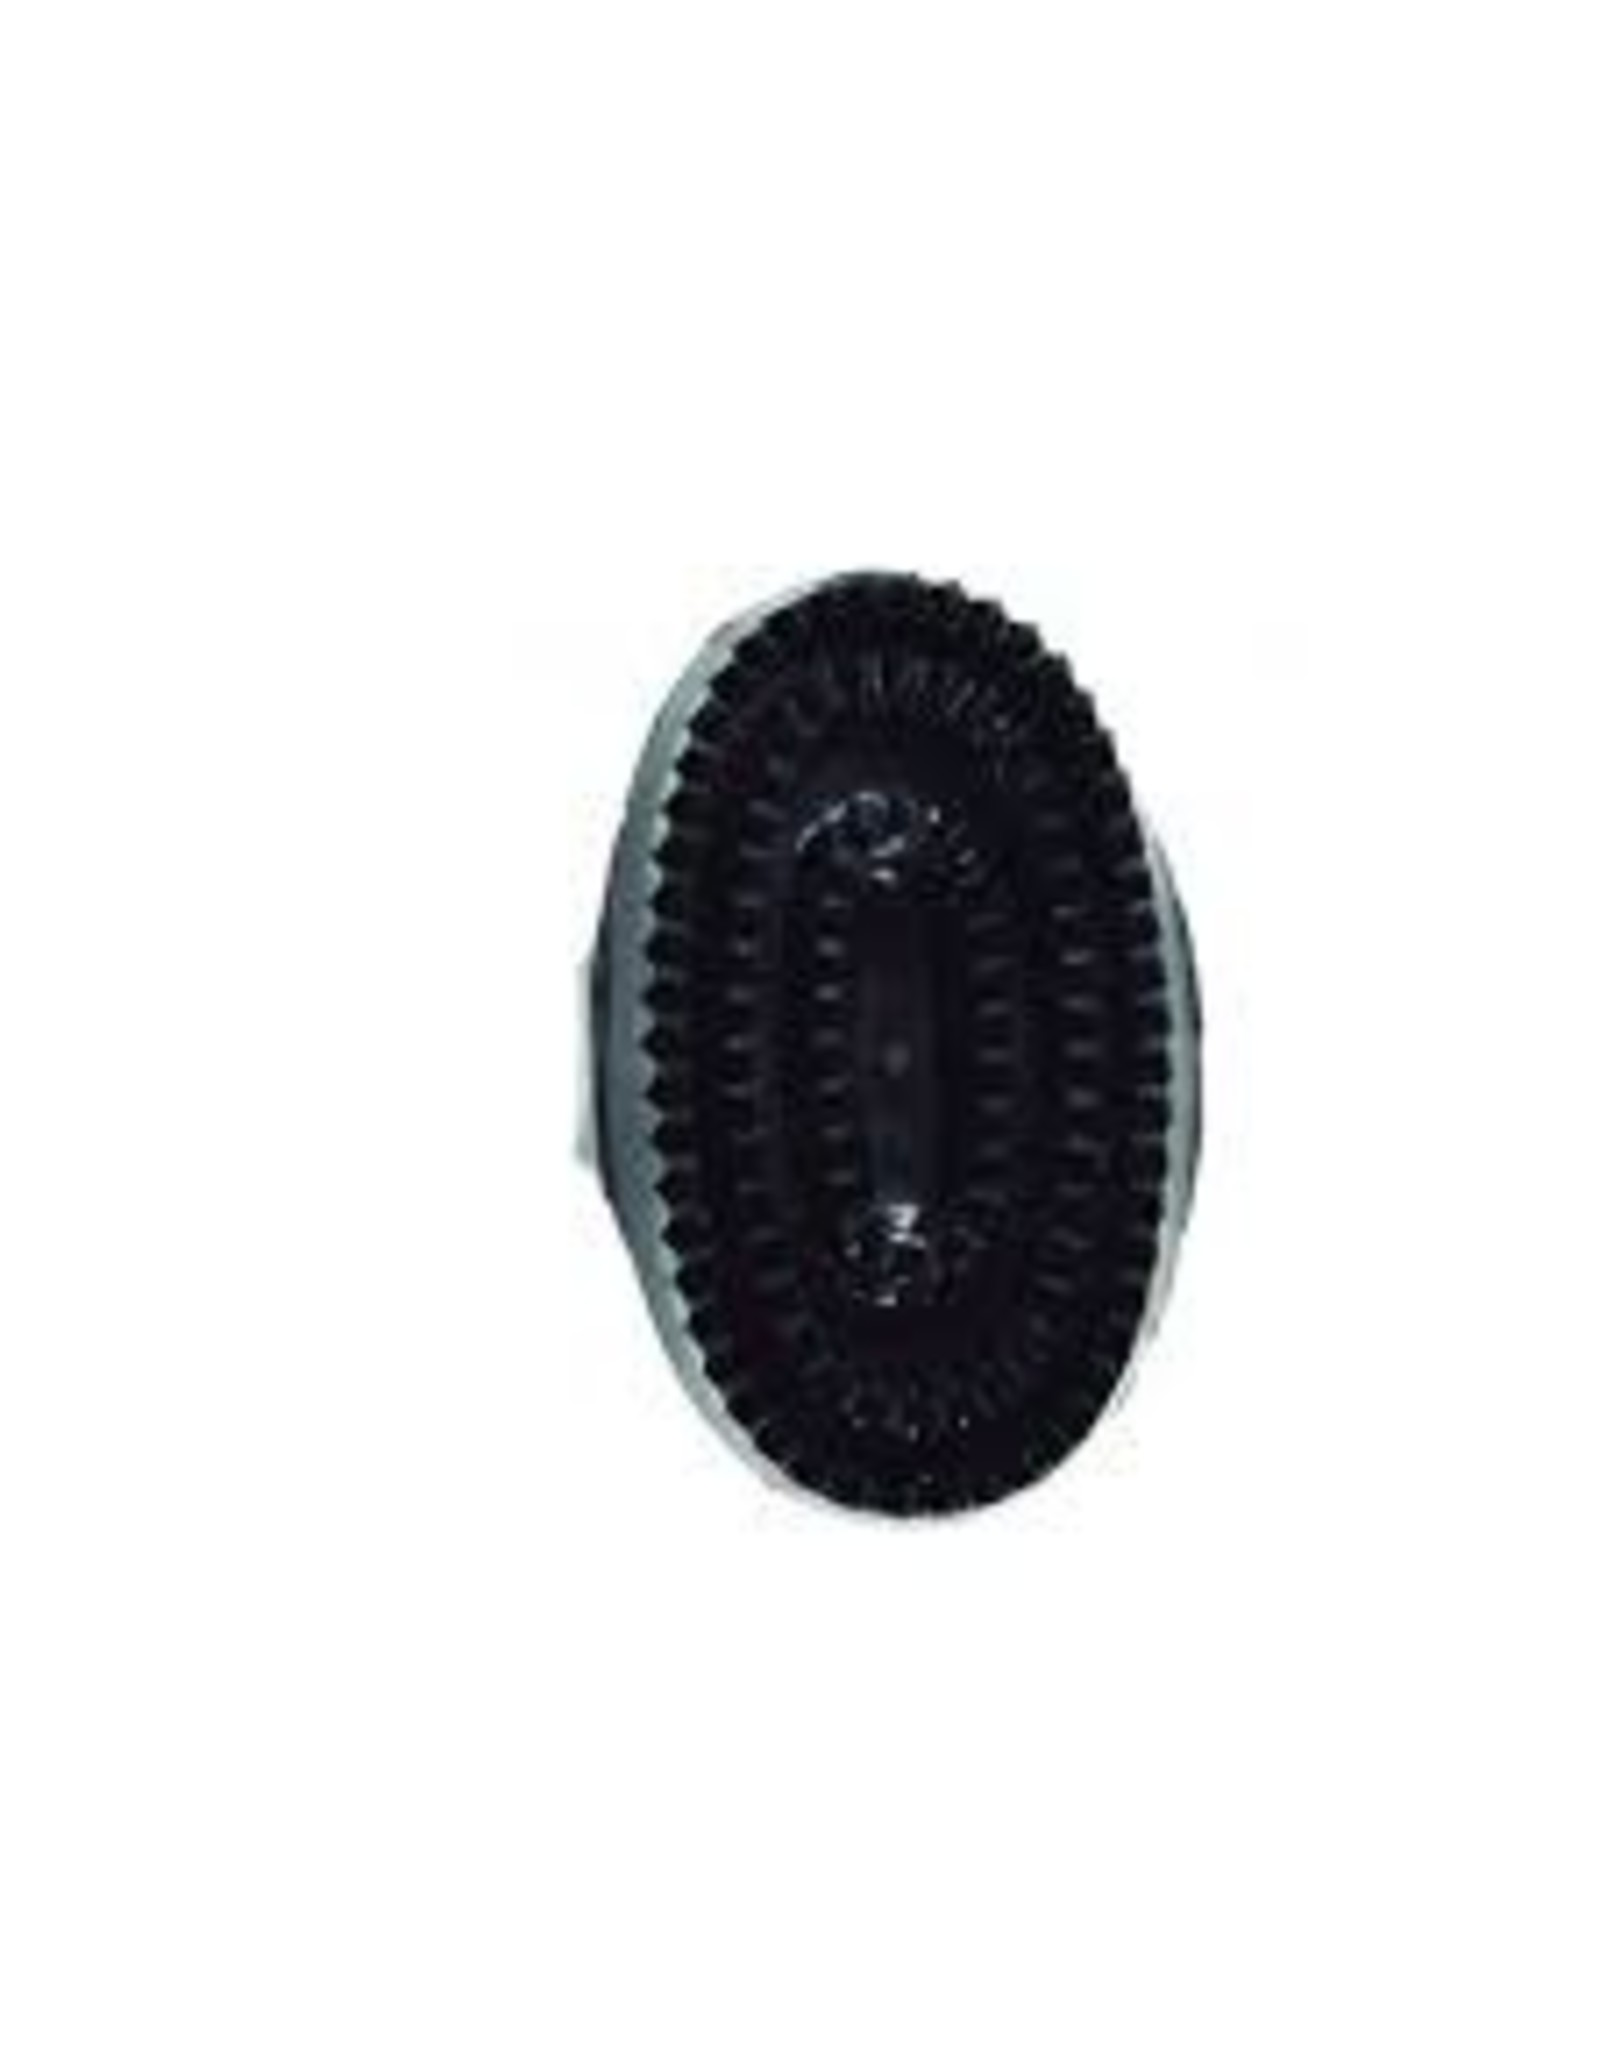 Rubber Curry Comb, JR size